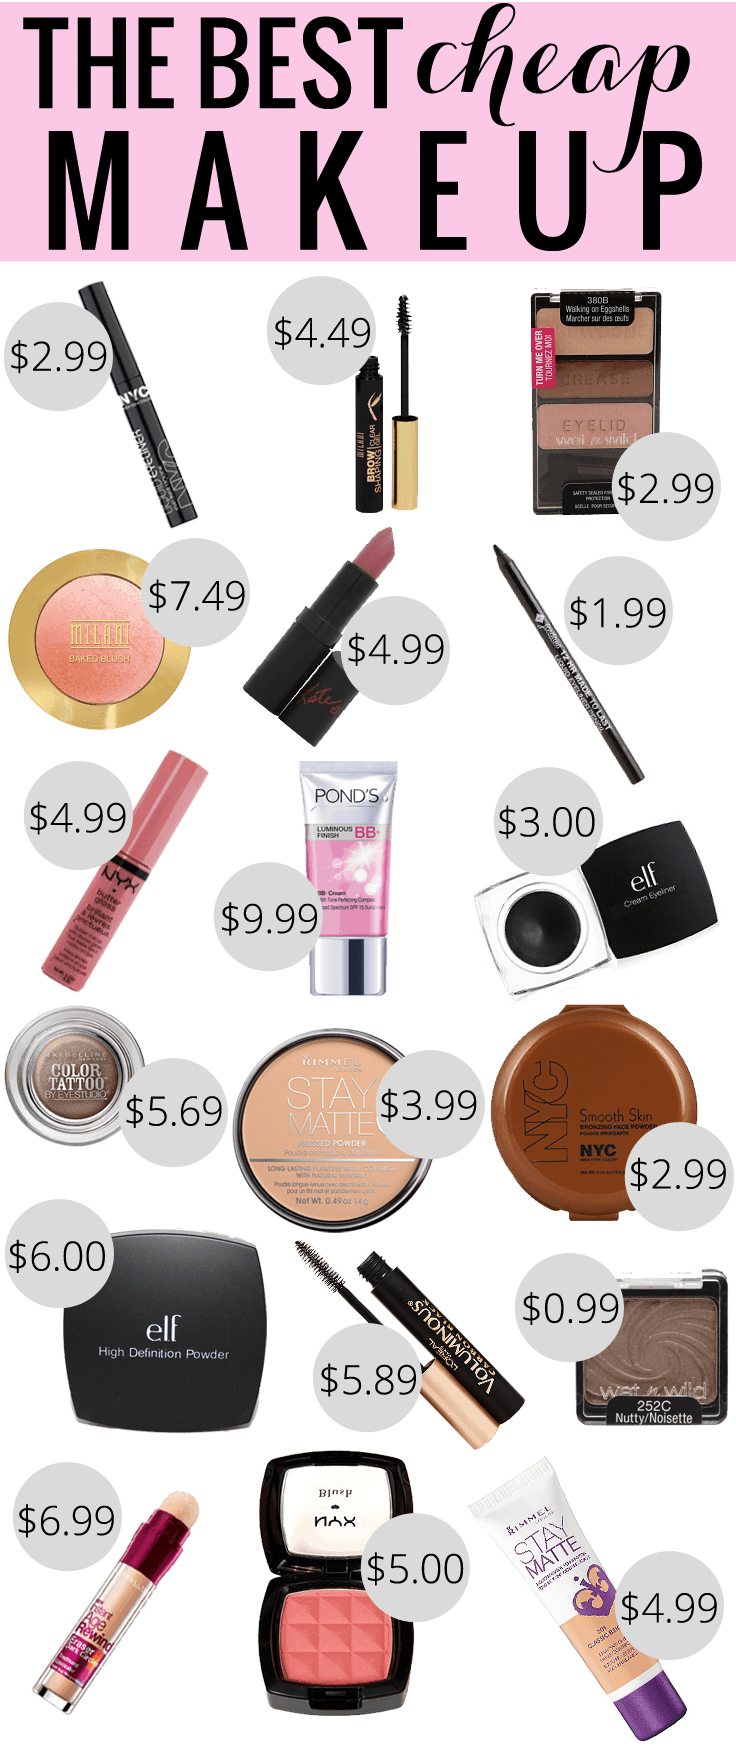 The Best Cheap Makeup Beauty Meg O